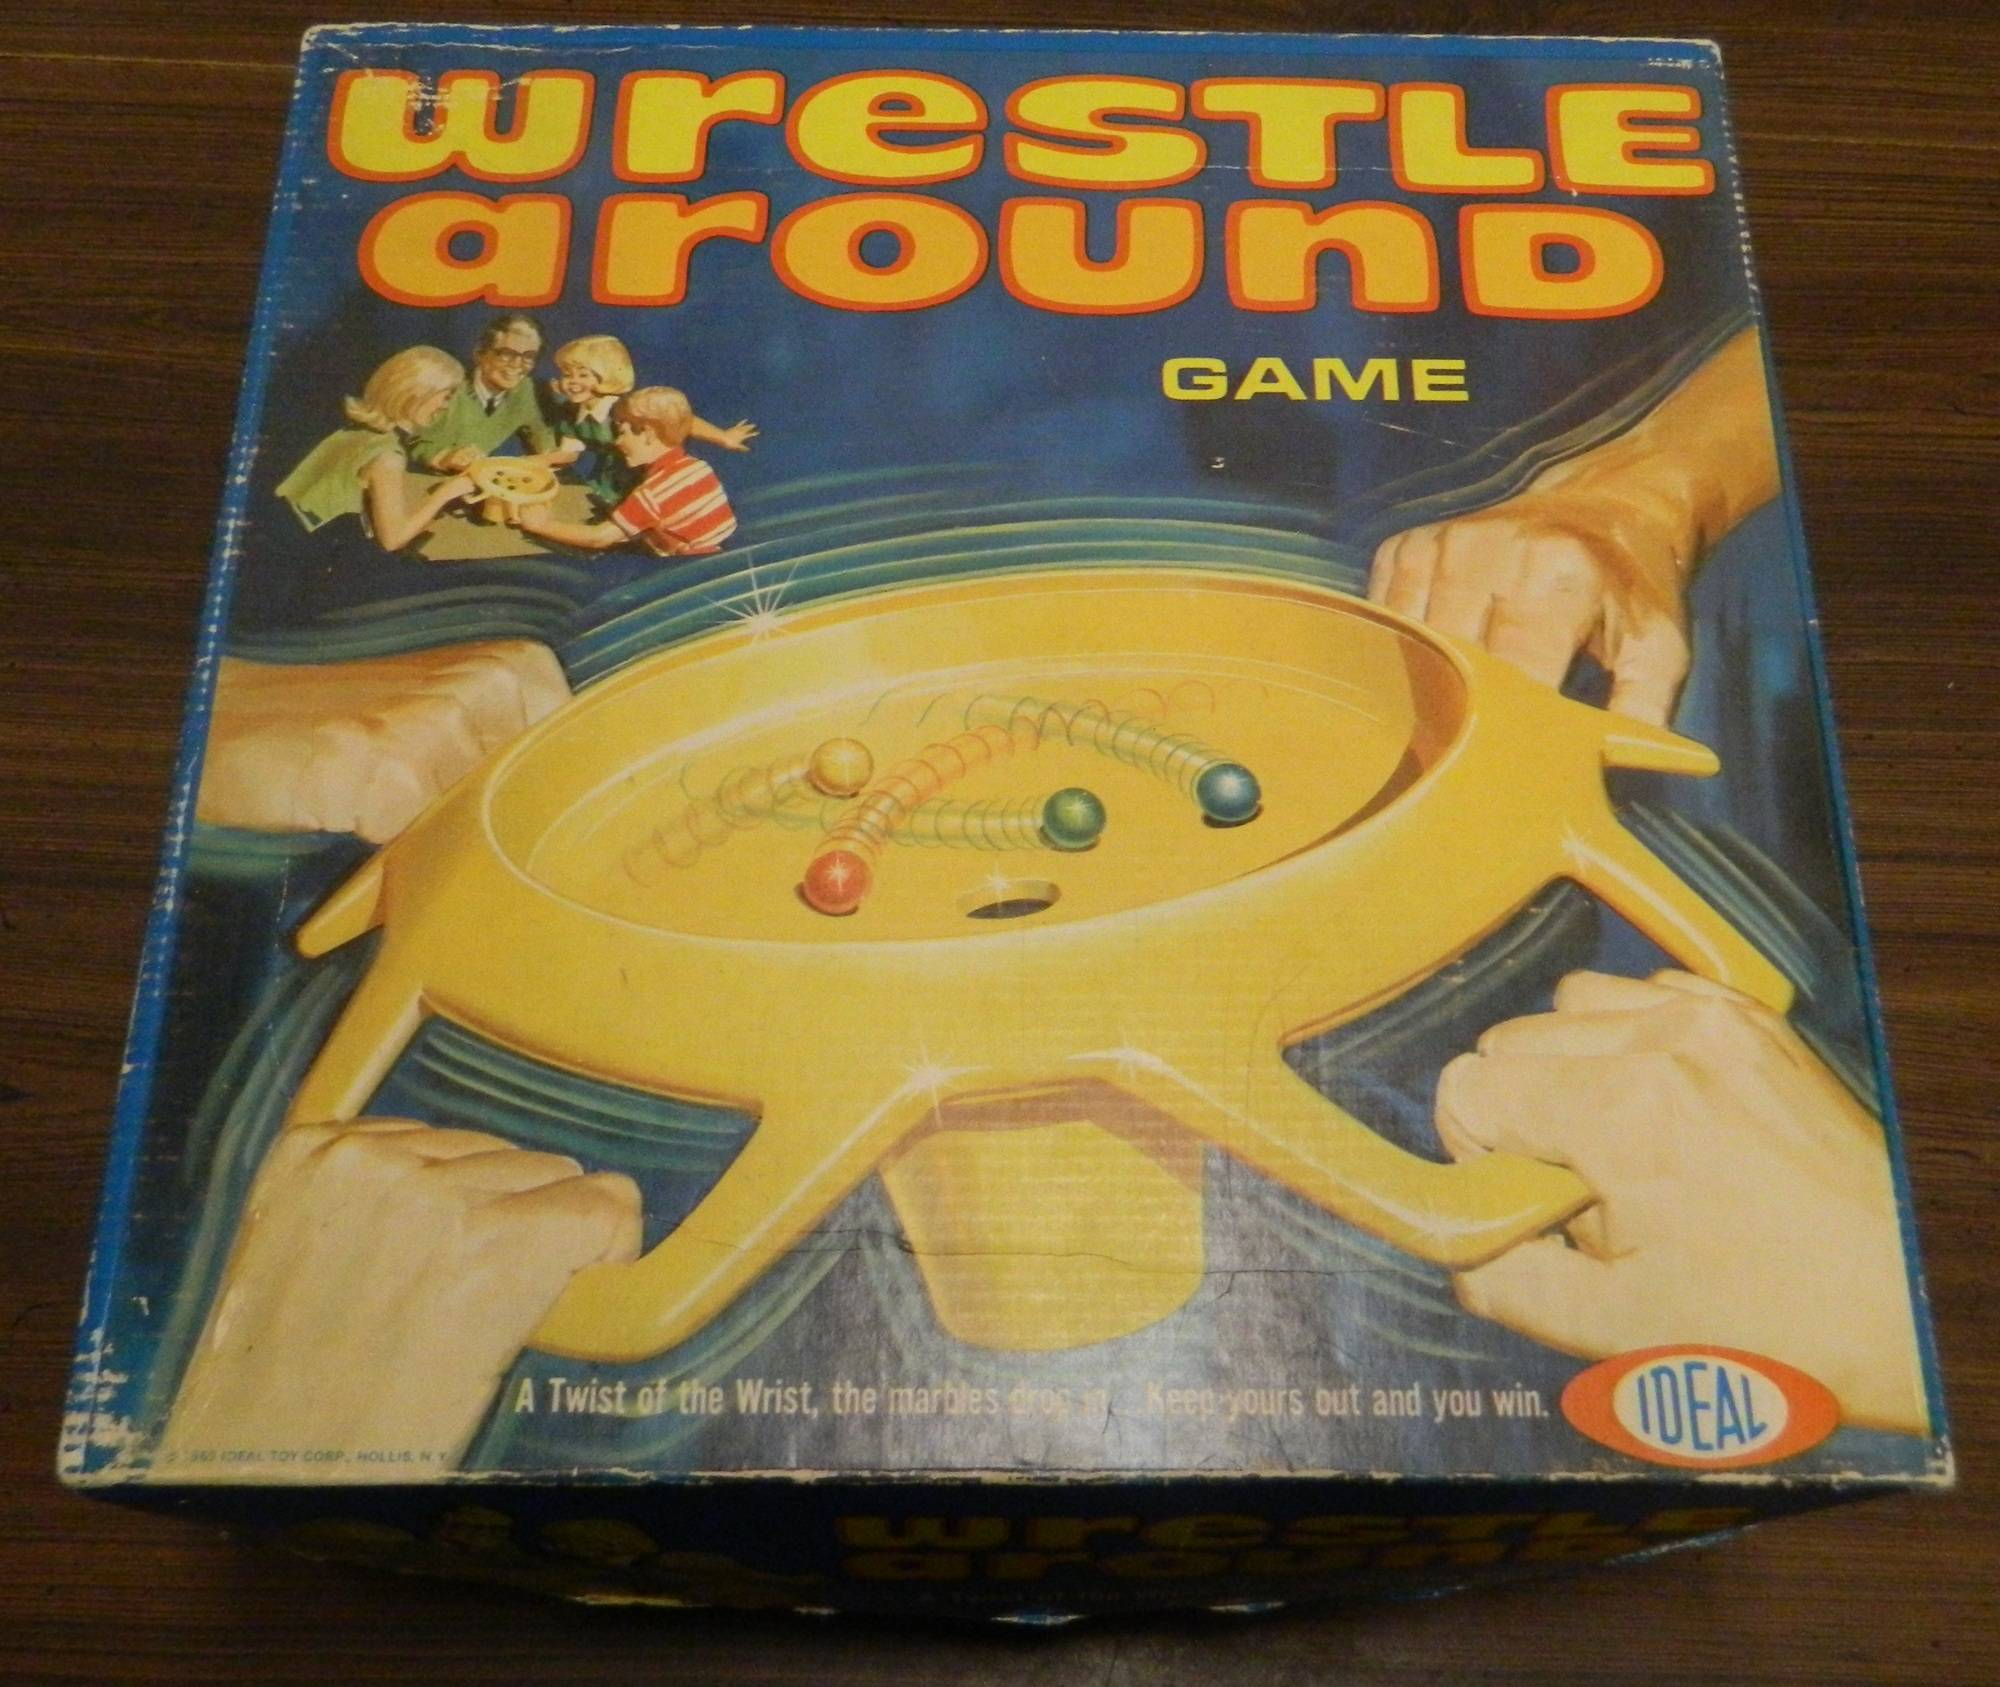 Box for Wrestle Around